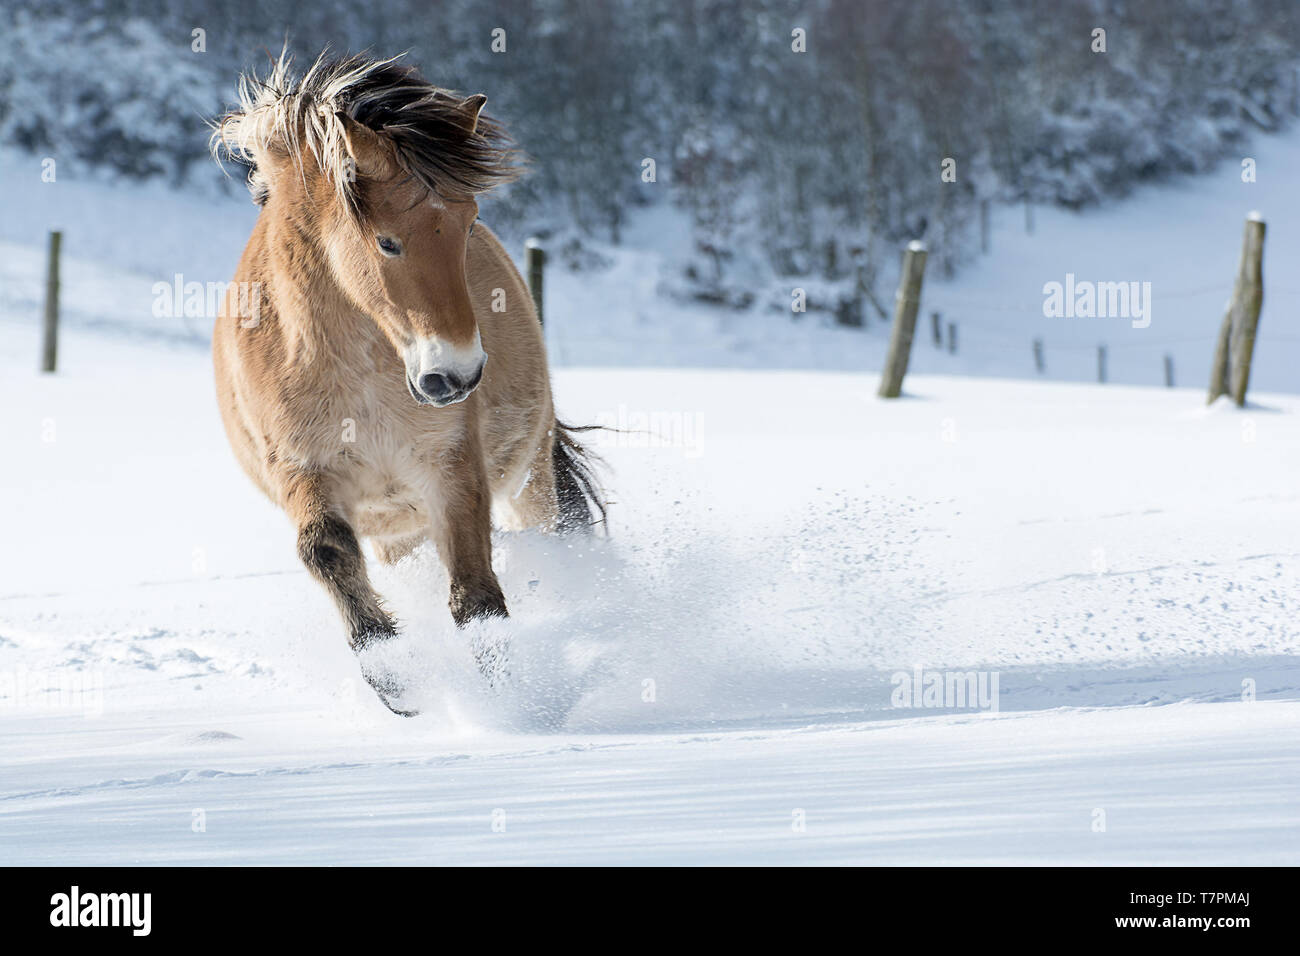 A horse of the breed Haflinger gallops in the snow. The sun is shining, the horse is throwing up a lot of snow. The mane flies. Copy Space - Stock Image